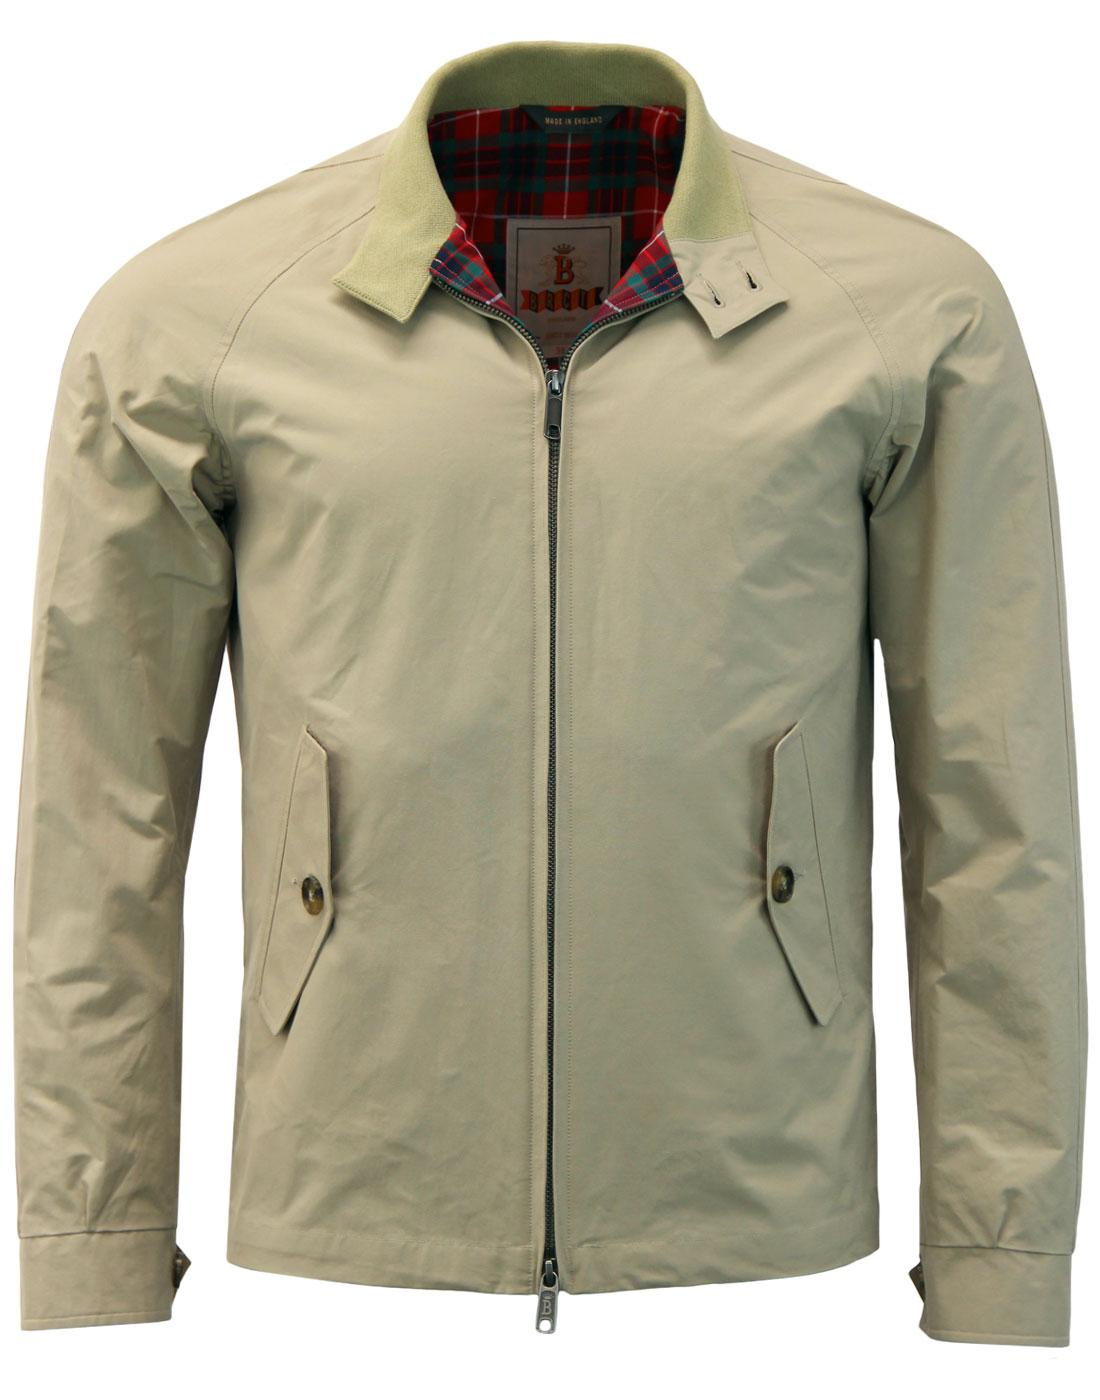 BARACUTA G4 Original Made In England Harrington N